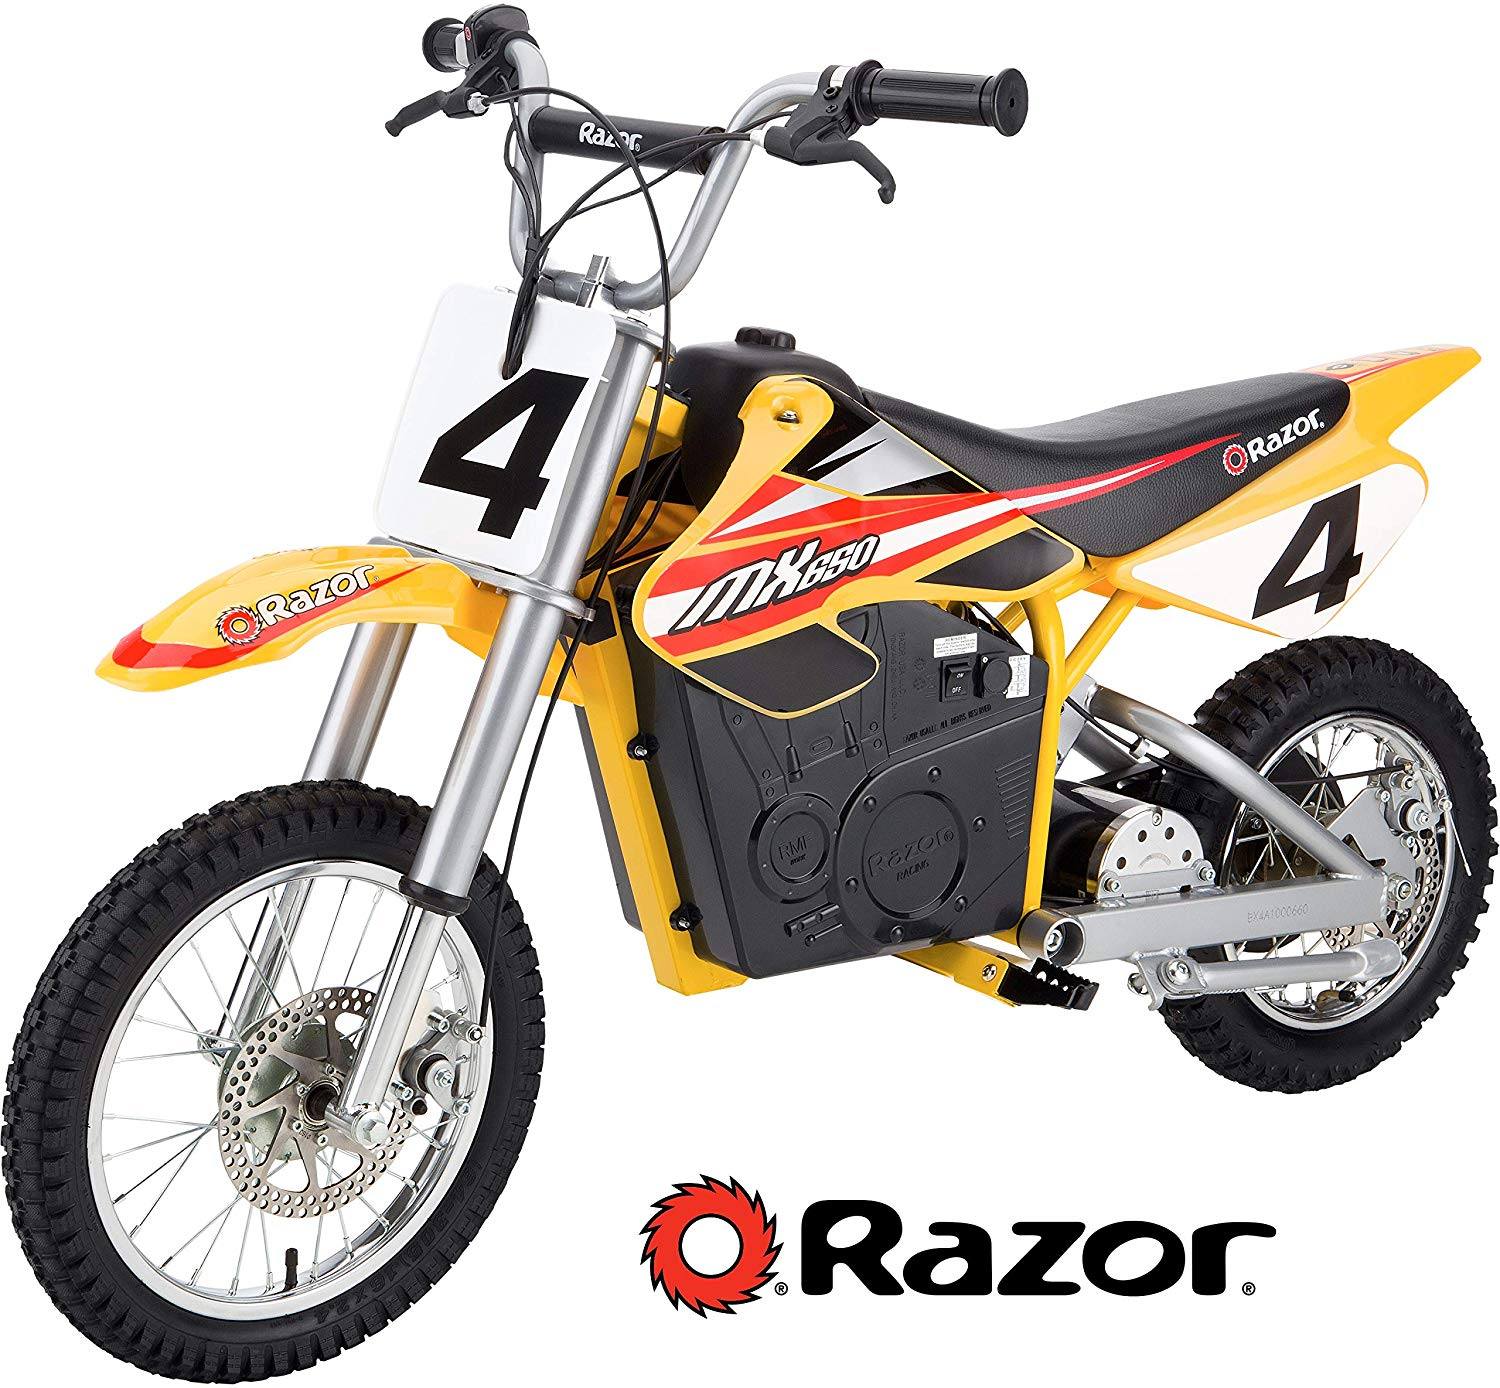 Razor MX650 Rocket Electric Motocross Bike.